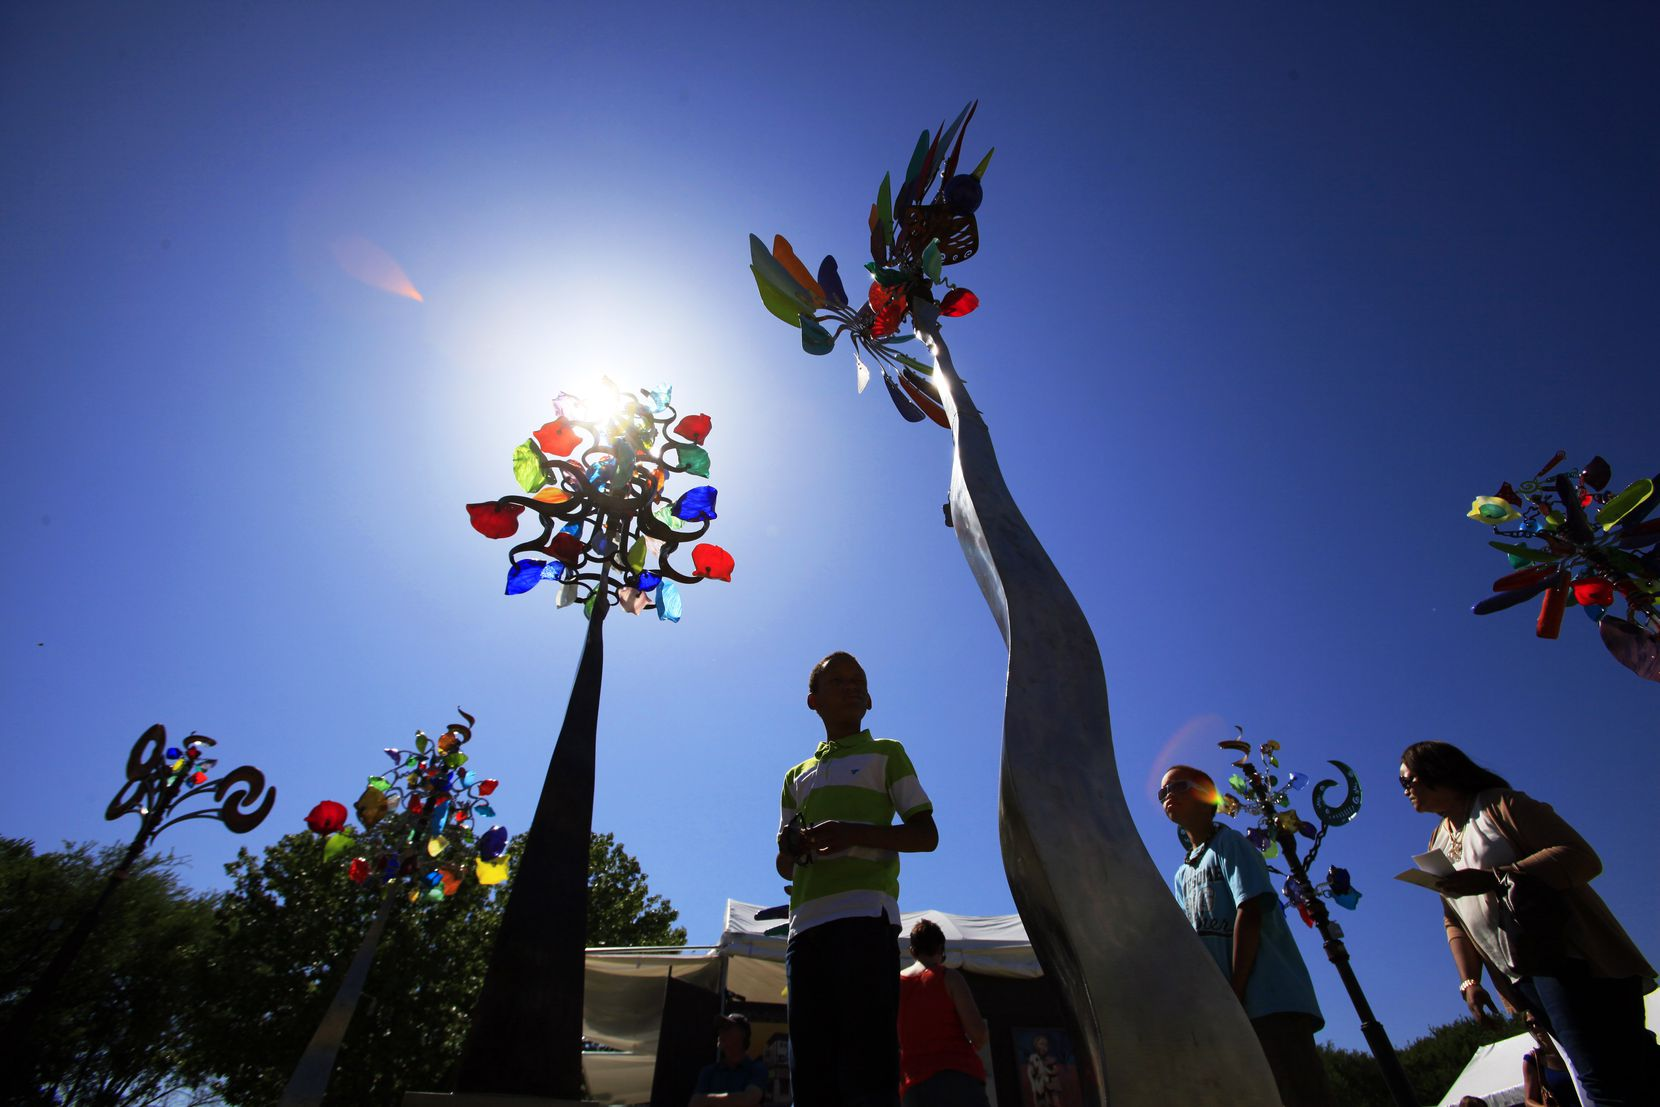 Kinetic wind sculptures were one of the cool attractions at last year's spring Cottonwood Art Festival.